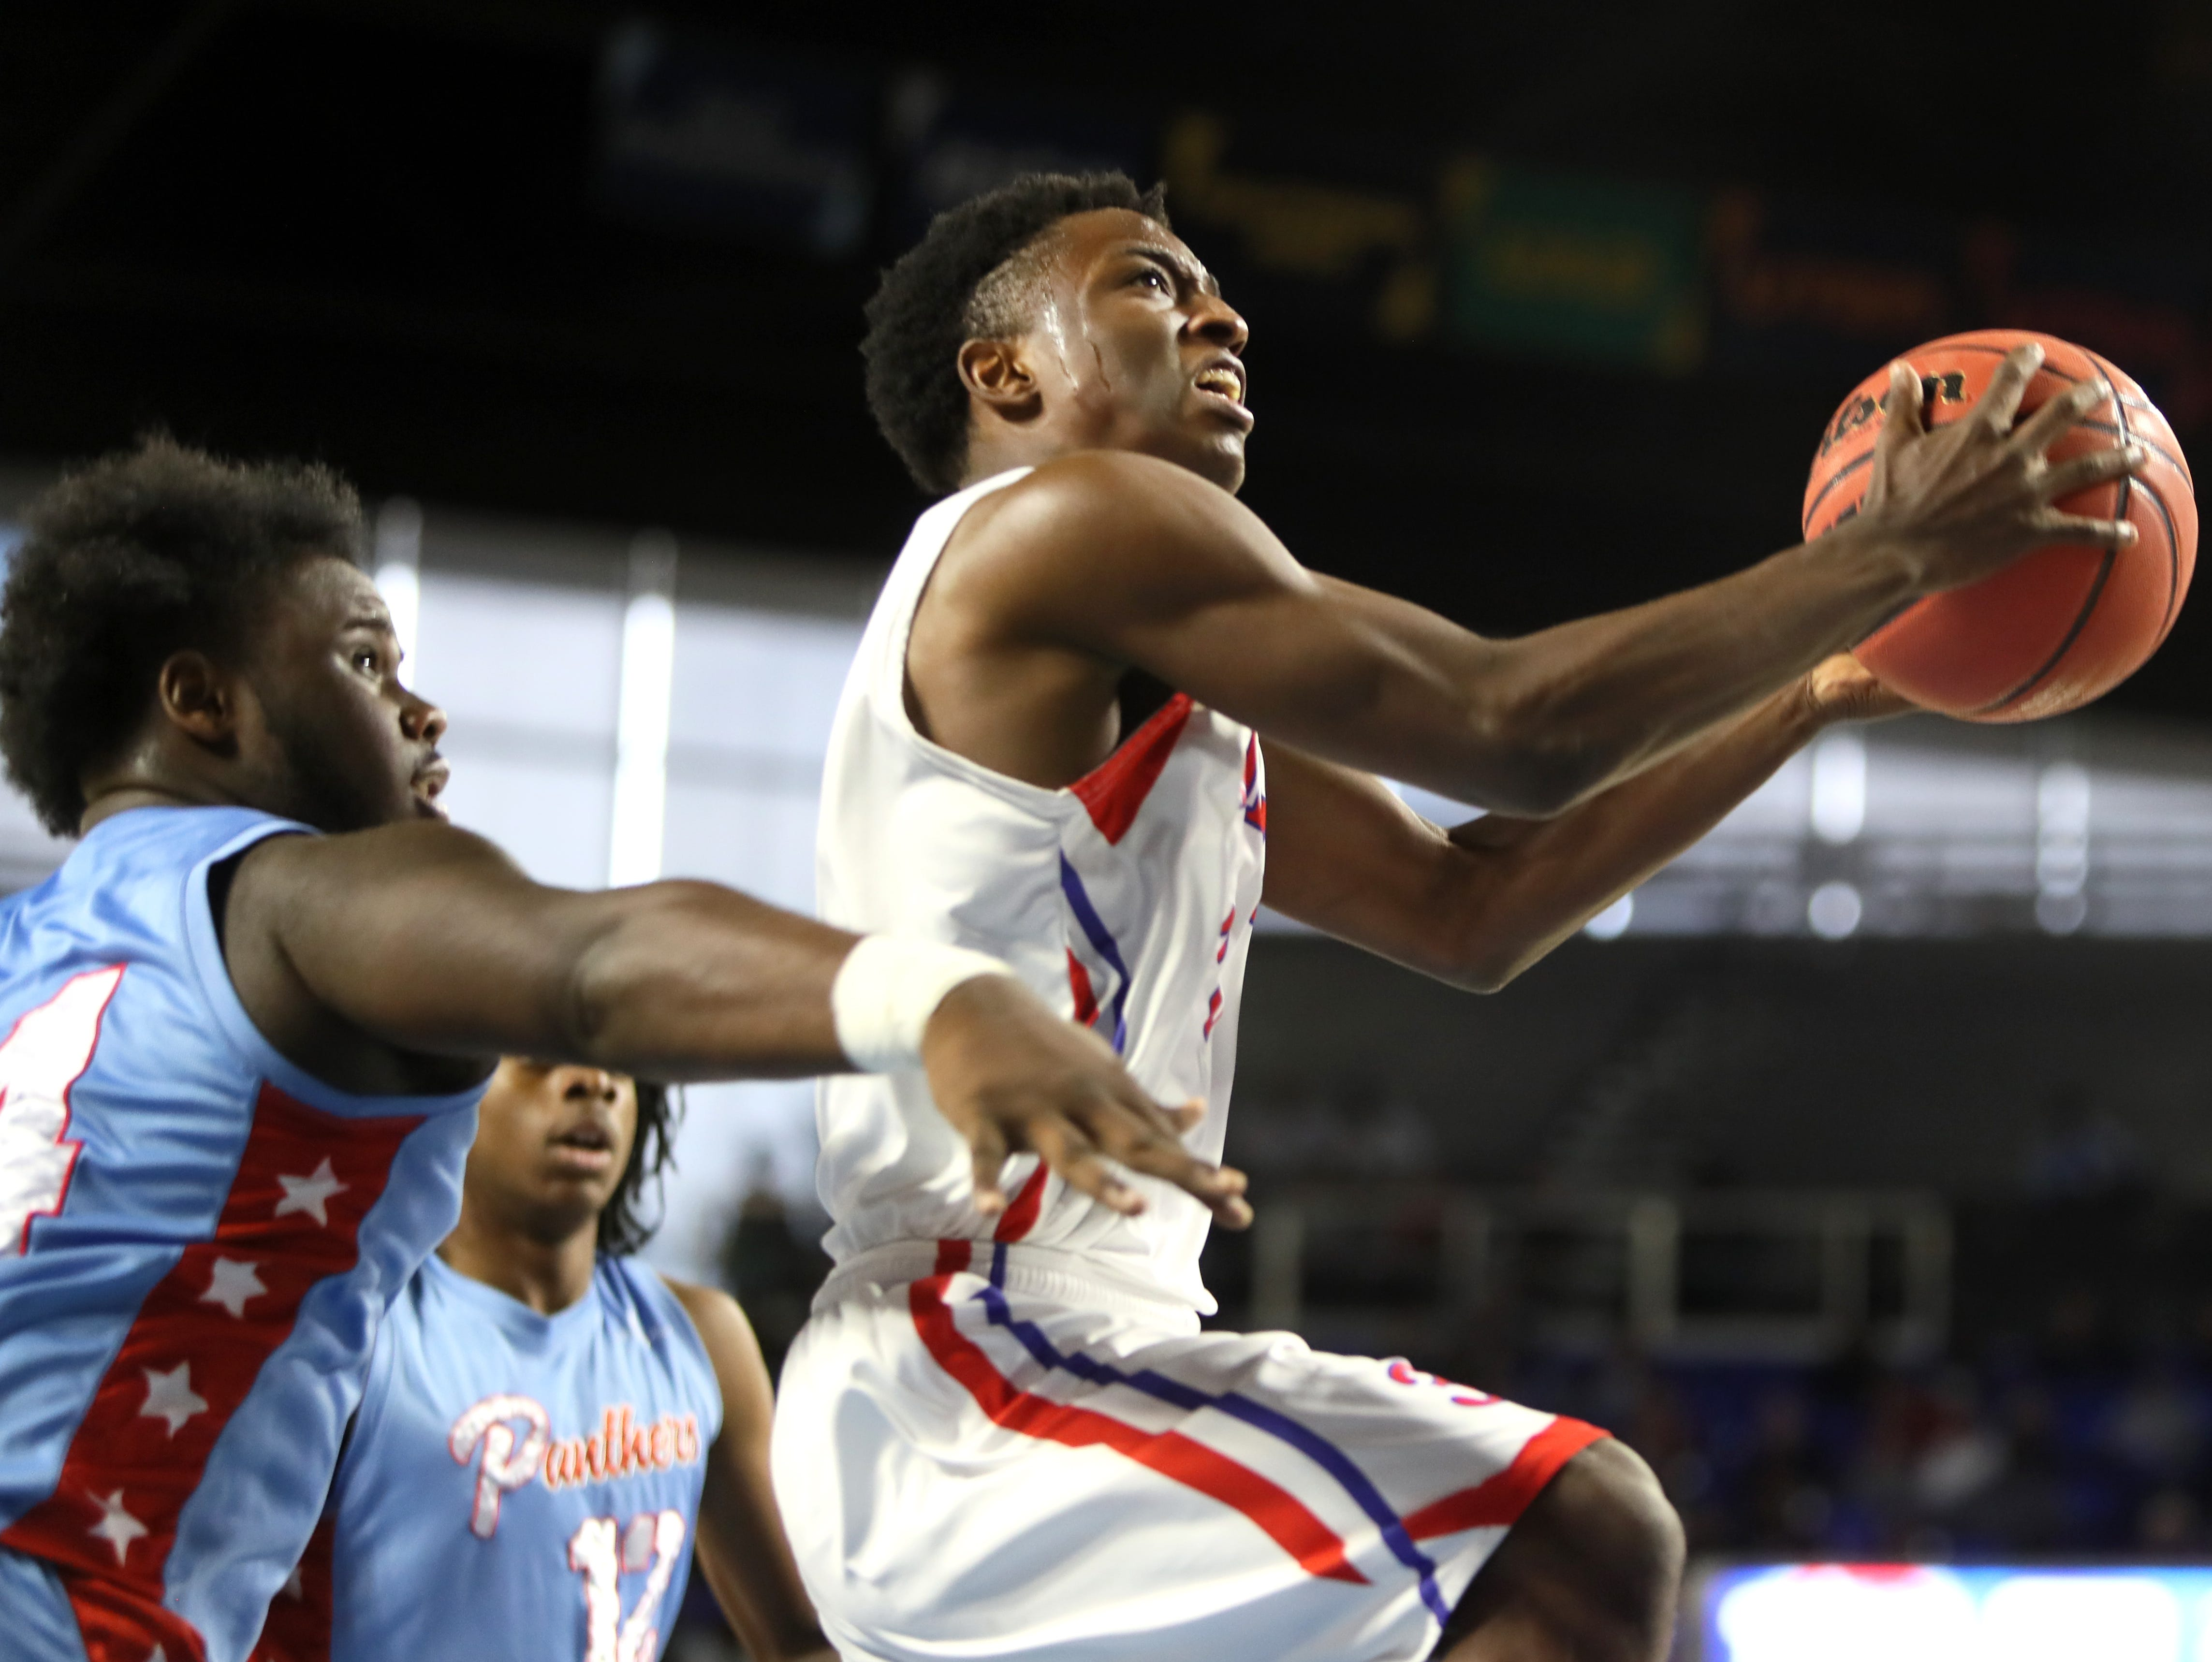 Wooddale's Alvin Miles lays the ball up past Brainerd's Ciante Chaney during the Class AA boys basketball state semifinal at the Murphy Center in Murfreesboro, Tenn. on Thursday, March 14, 2019.